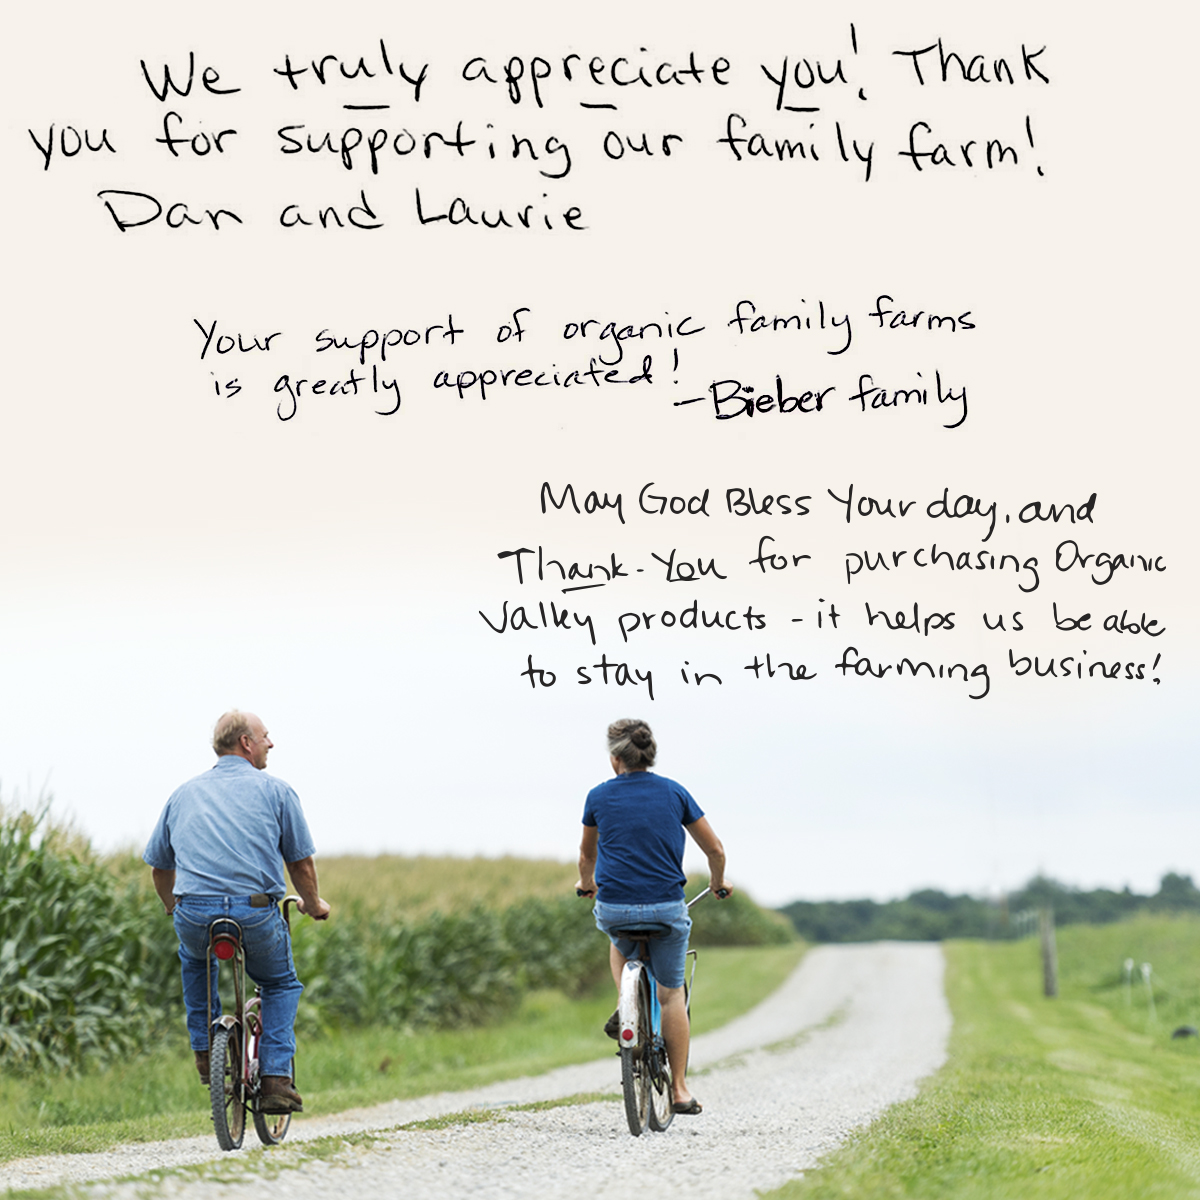 Your support of organic family farms is greatly appreciated.